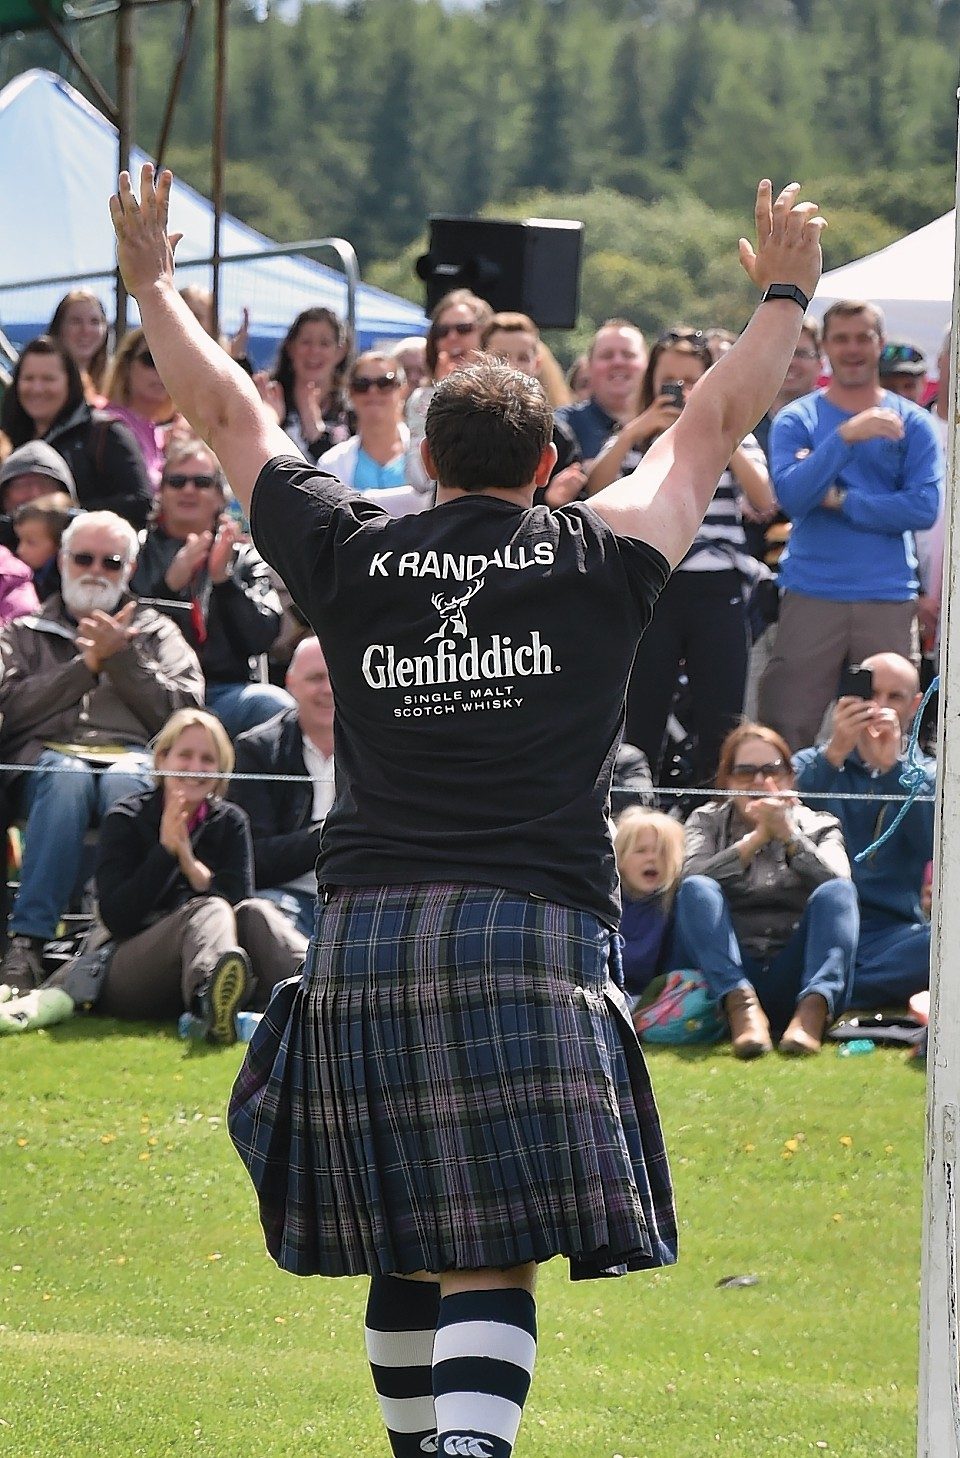 Aboyne Highland Games - Weight over bar - record was broken by Kyle Randall with a throw of 17ft 3in. (previous record was 17ft 2in). Picture by Colin Rennie